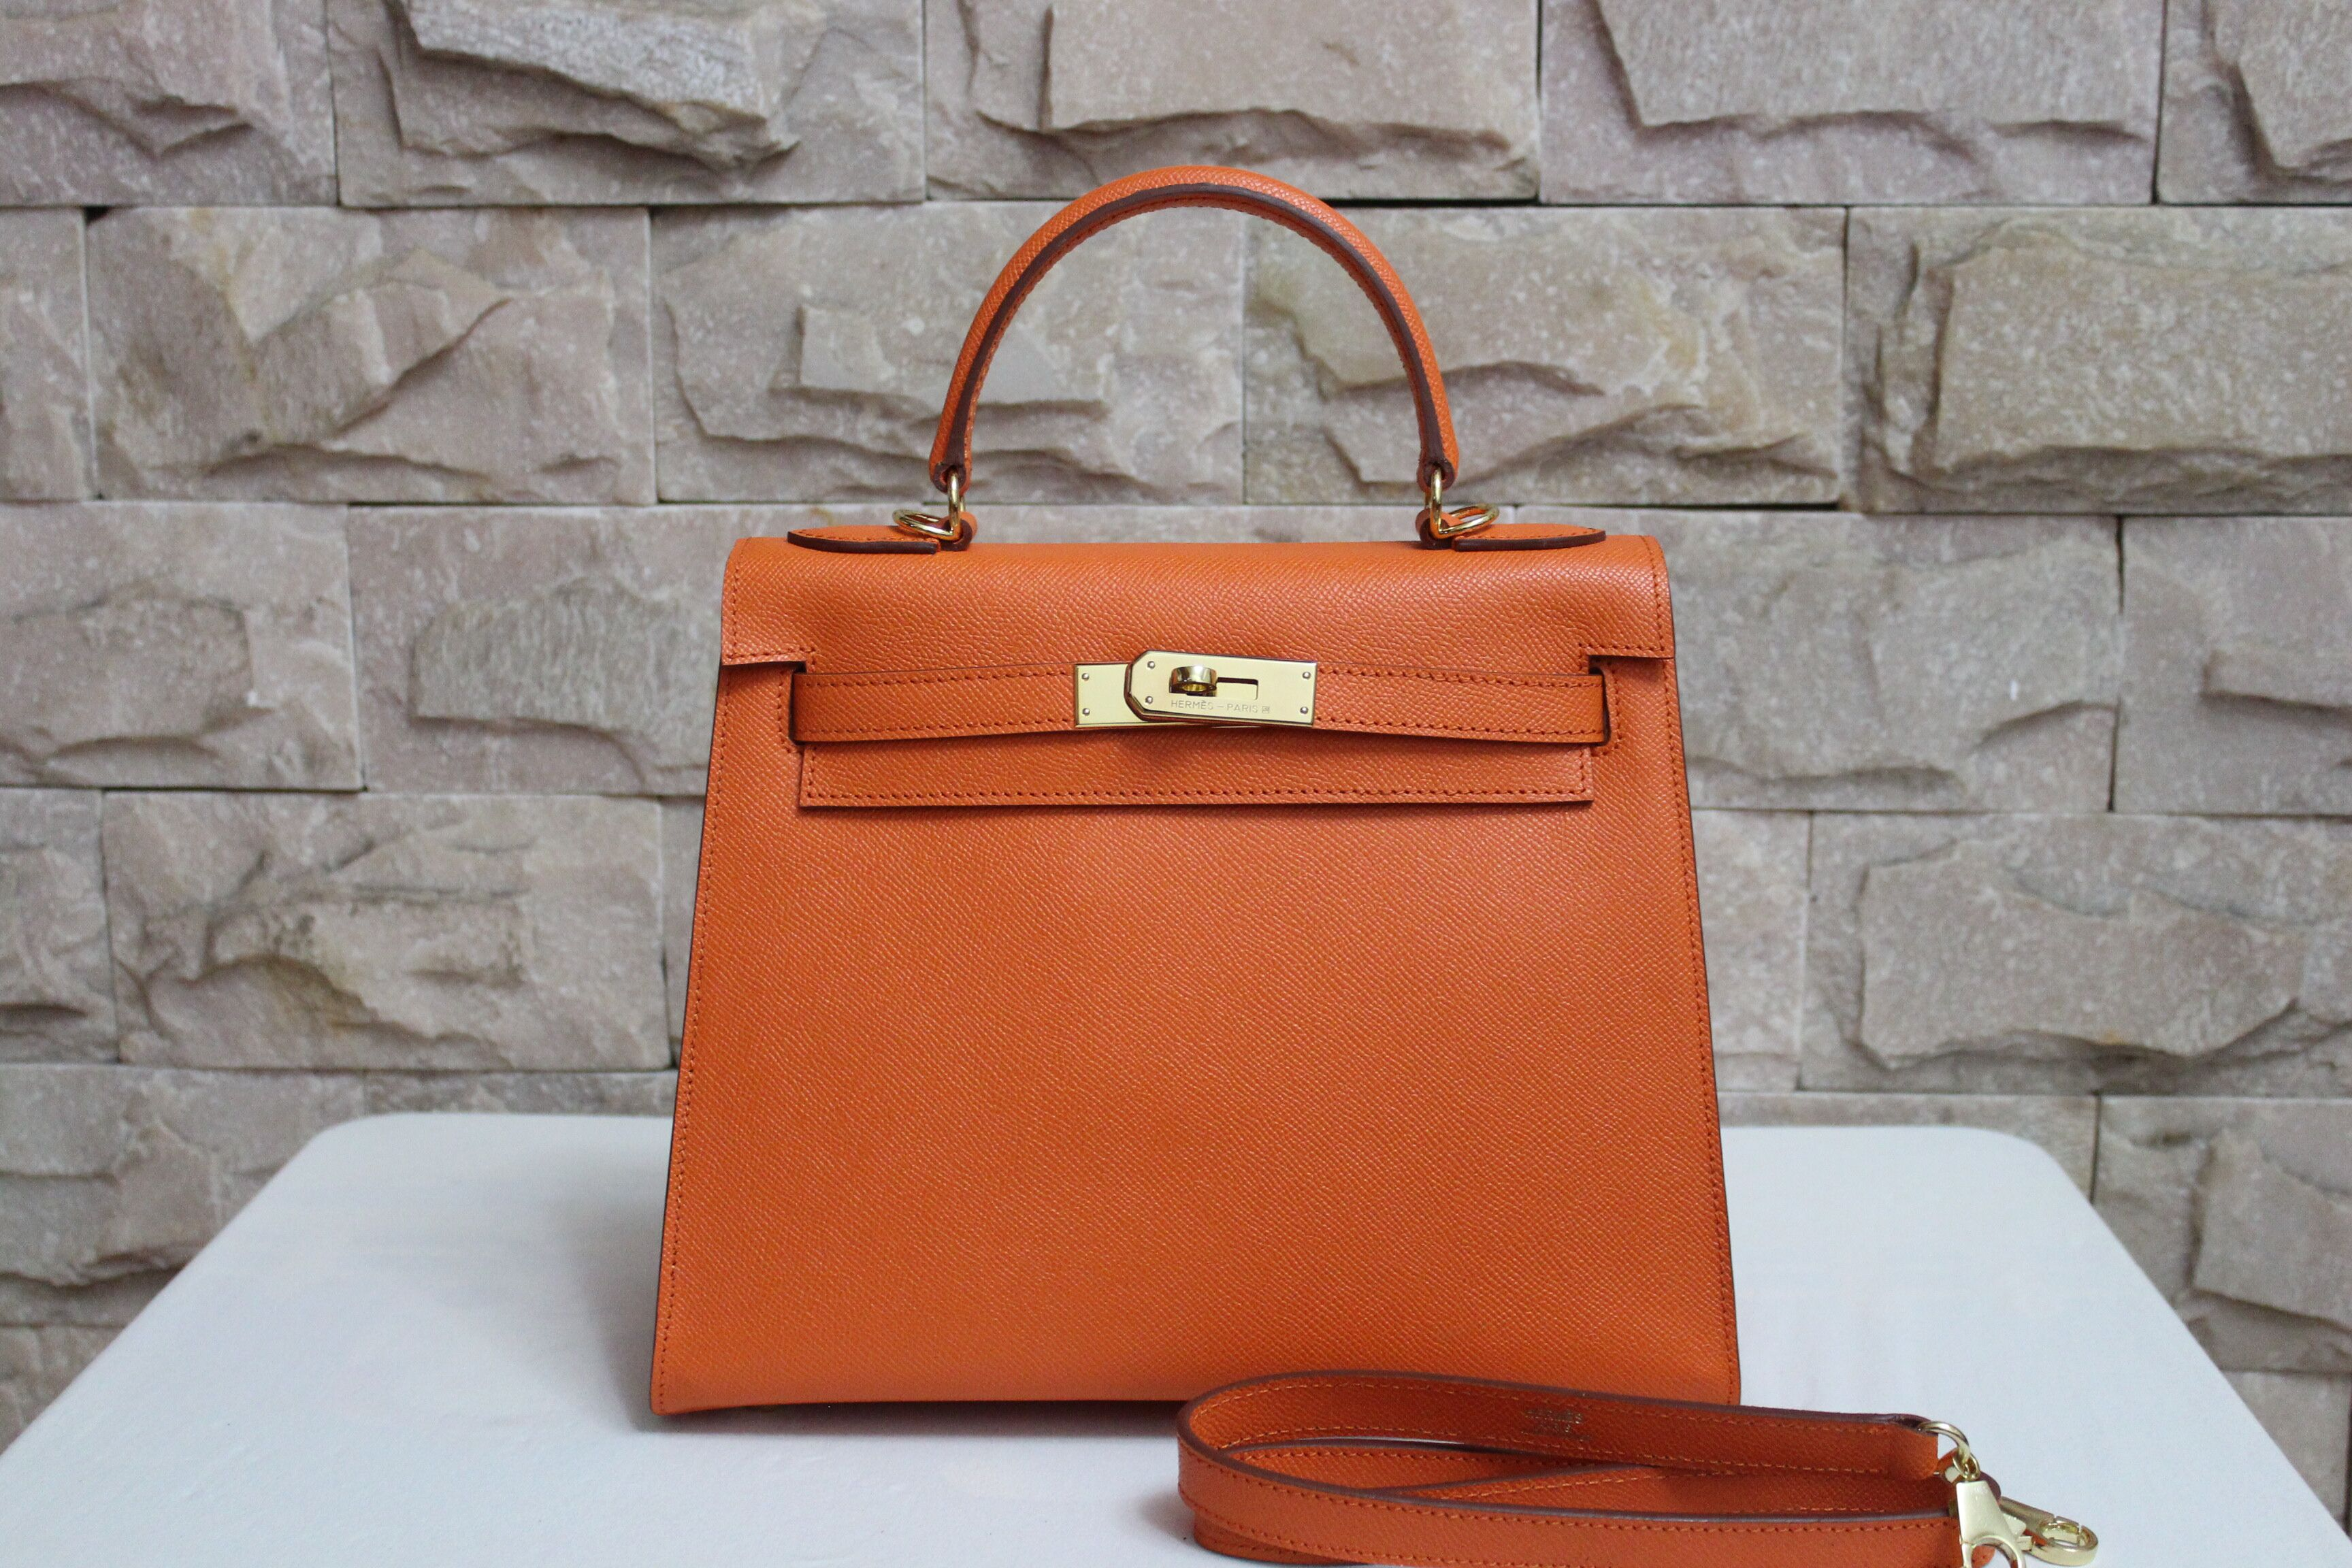 Hermes Kelly 28cm Shoulder Bags espom leather orange